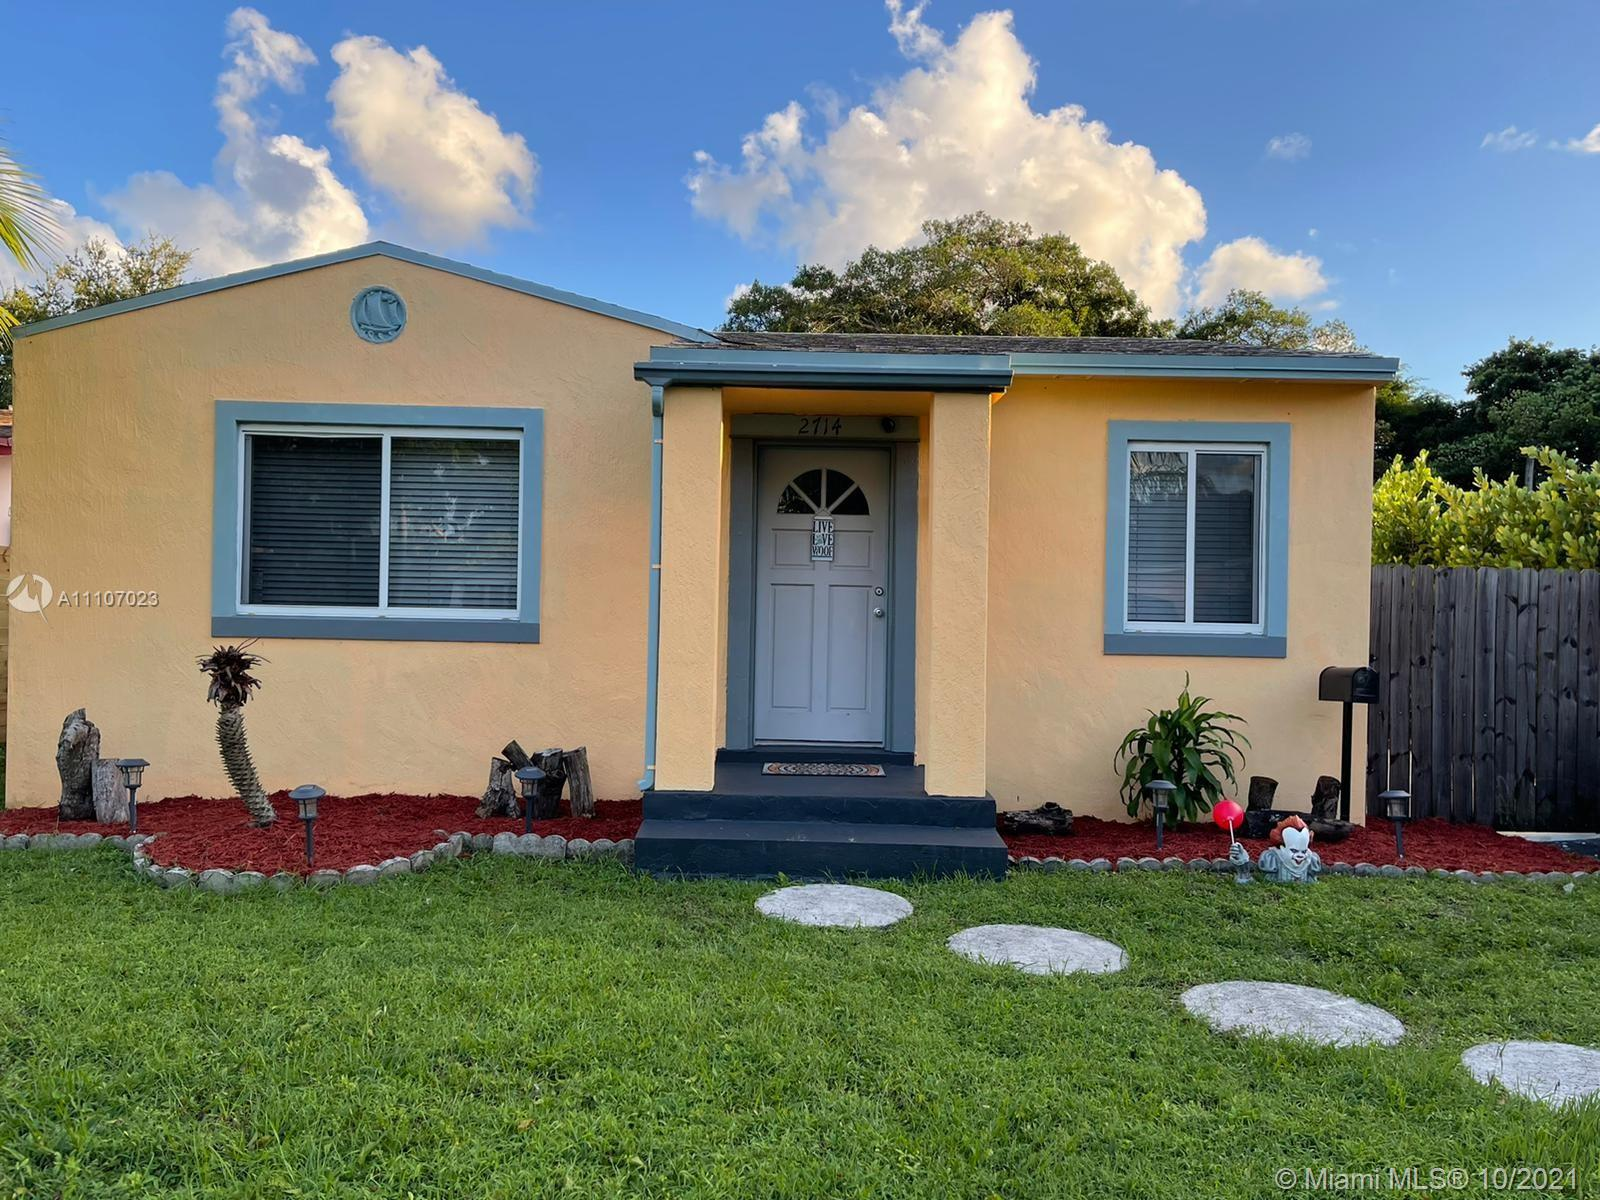 Hollywood Little Ranches - 2714 Taylor St, Hollywood, FL 33020